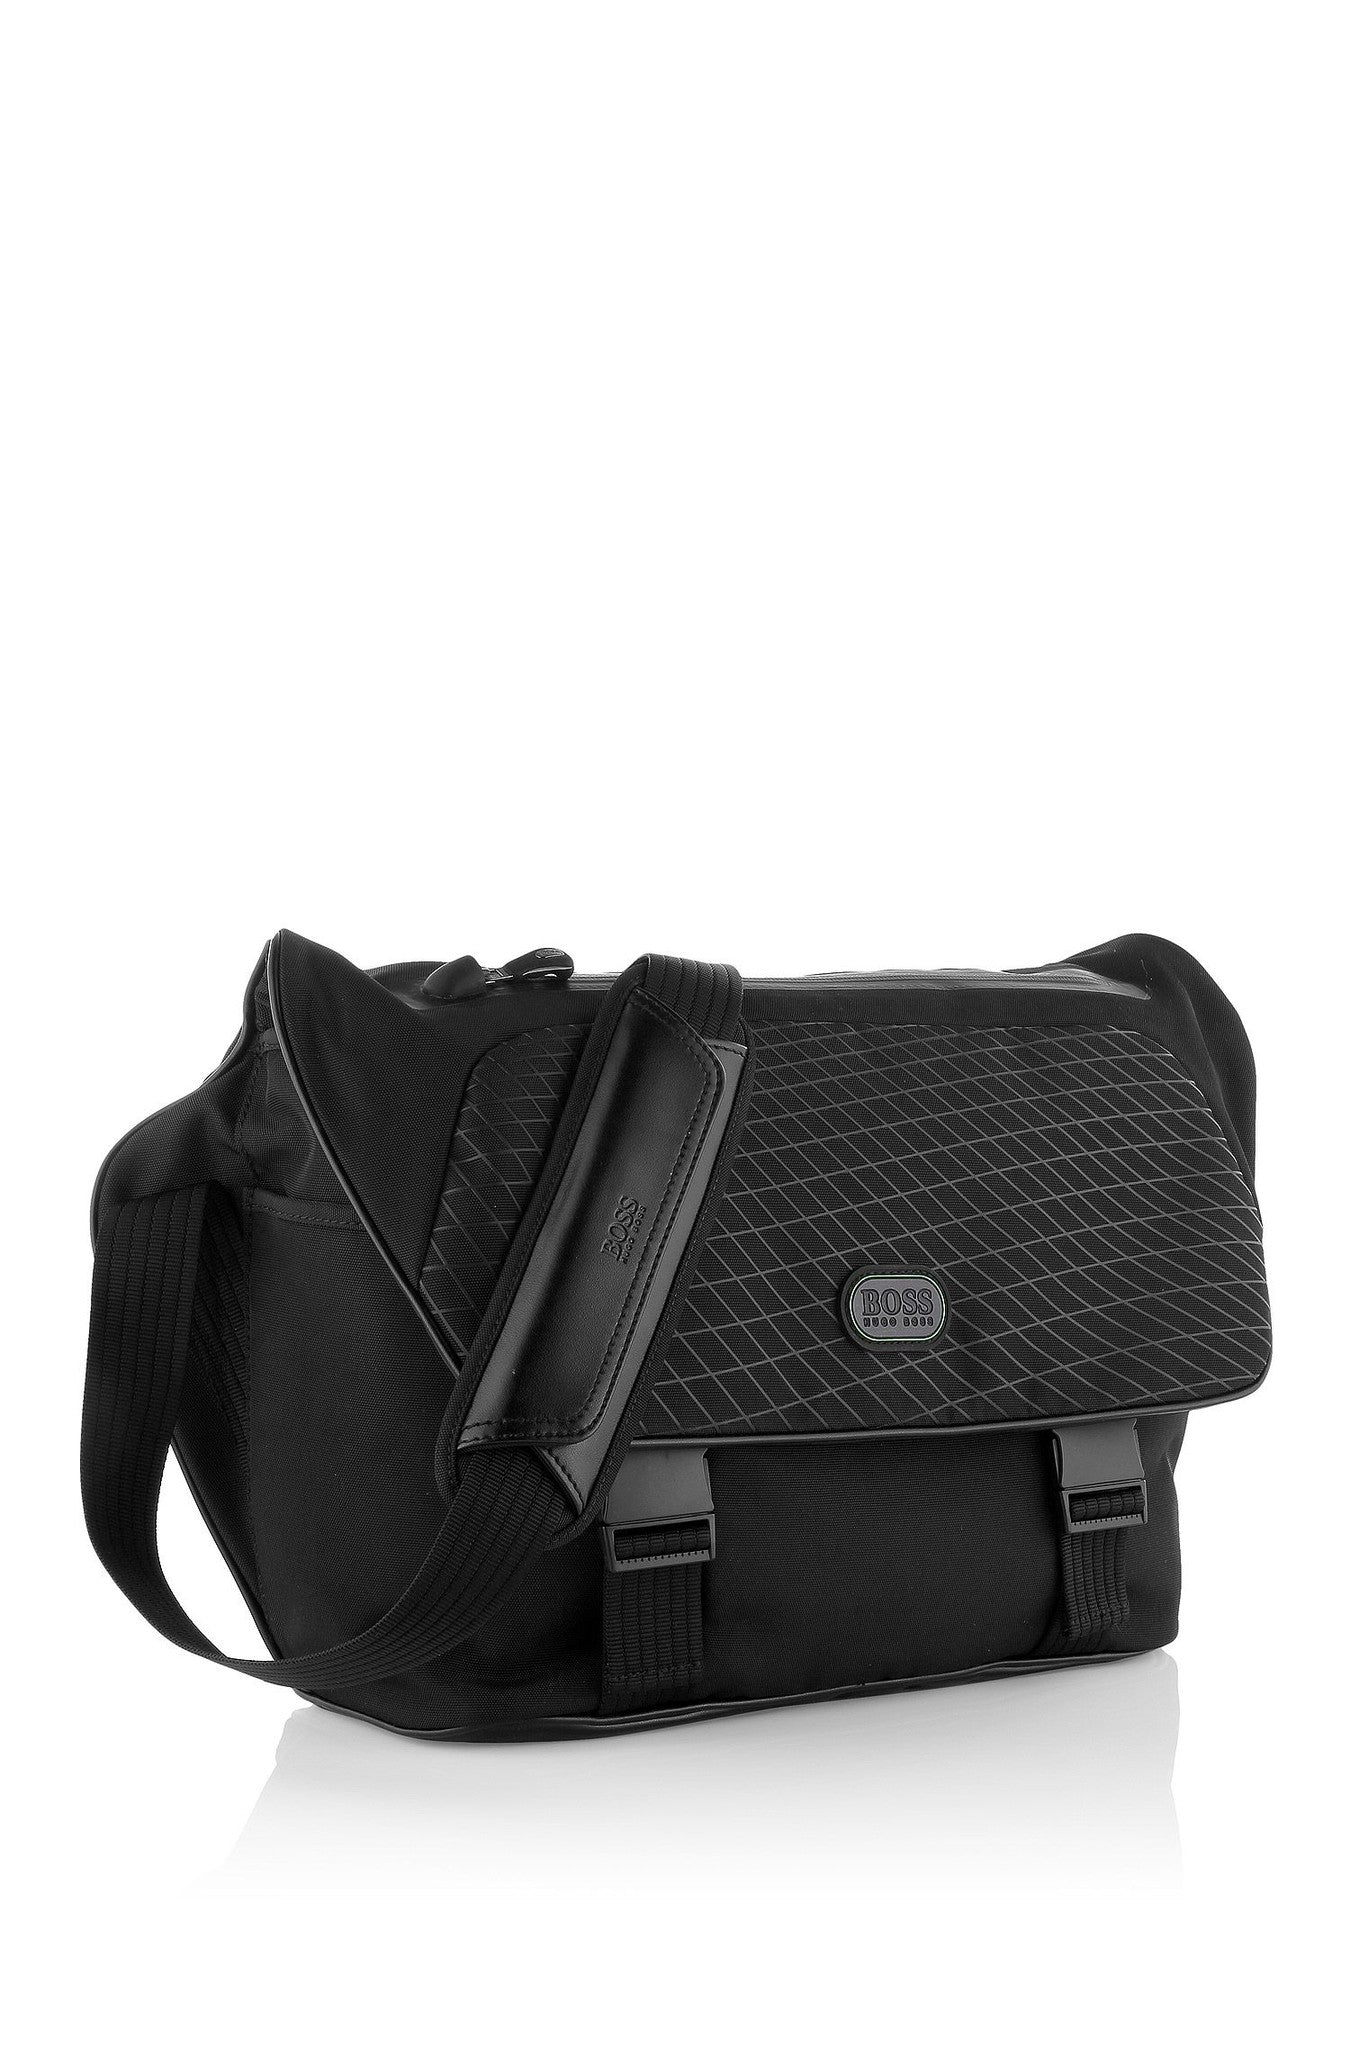 Hugo Boss Babord Messenger Bag in Textured Nylon 50285563